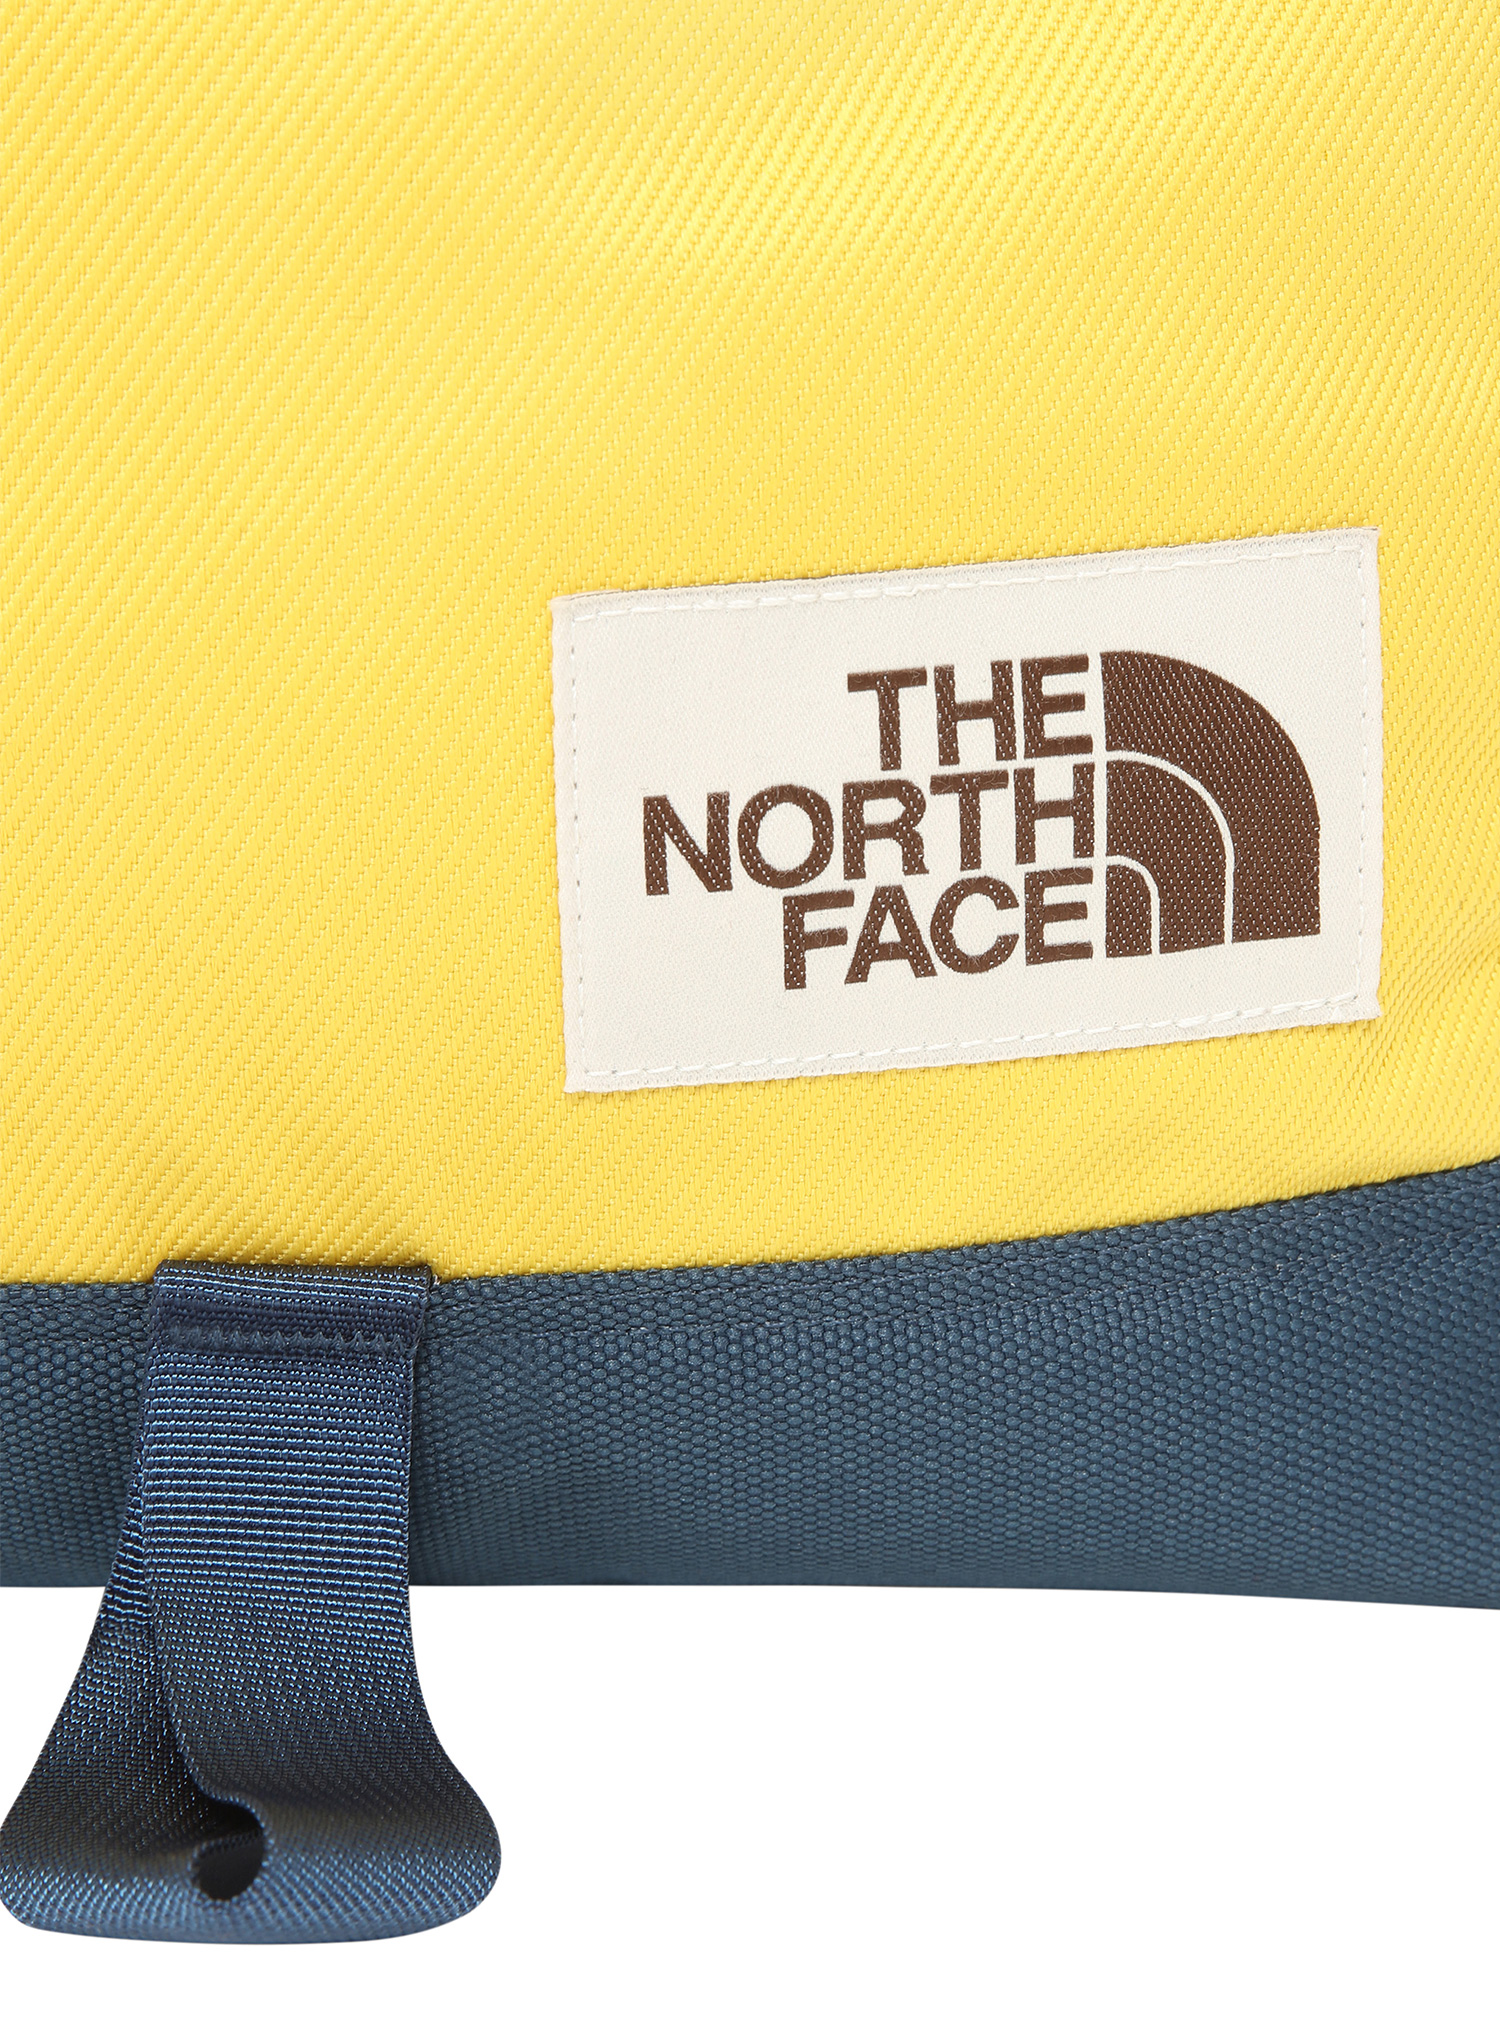 Plecak The North Face Daypack - bamboo yellow/blue - zdjęcie nr. 5